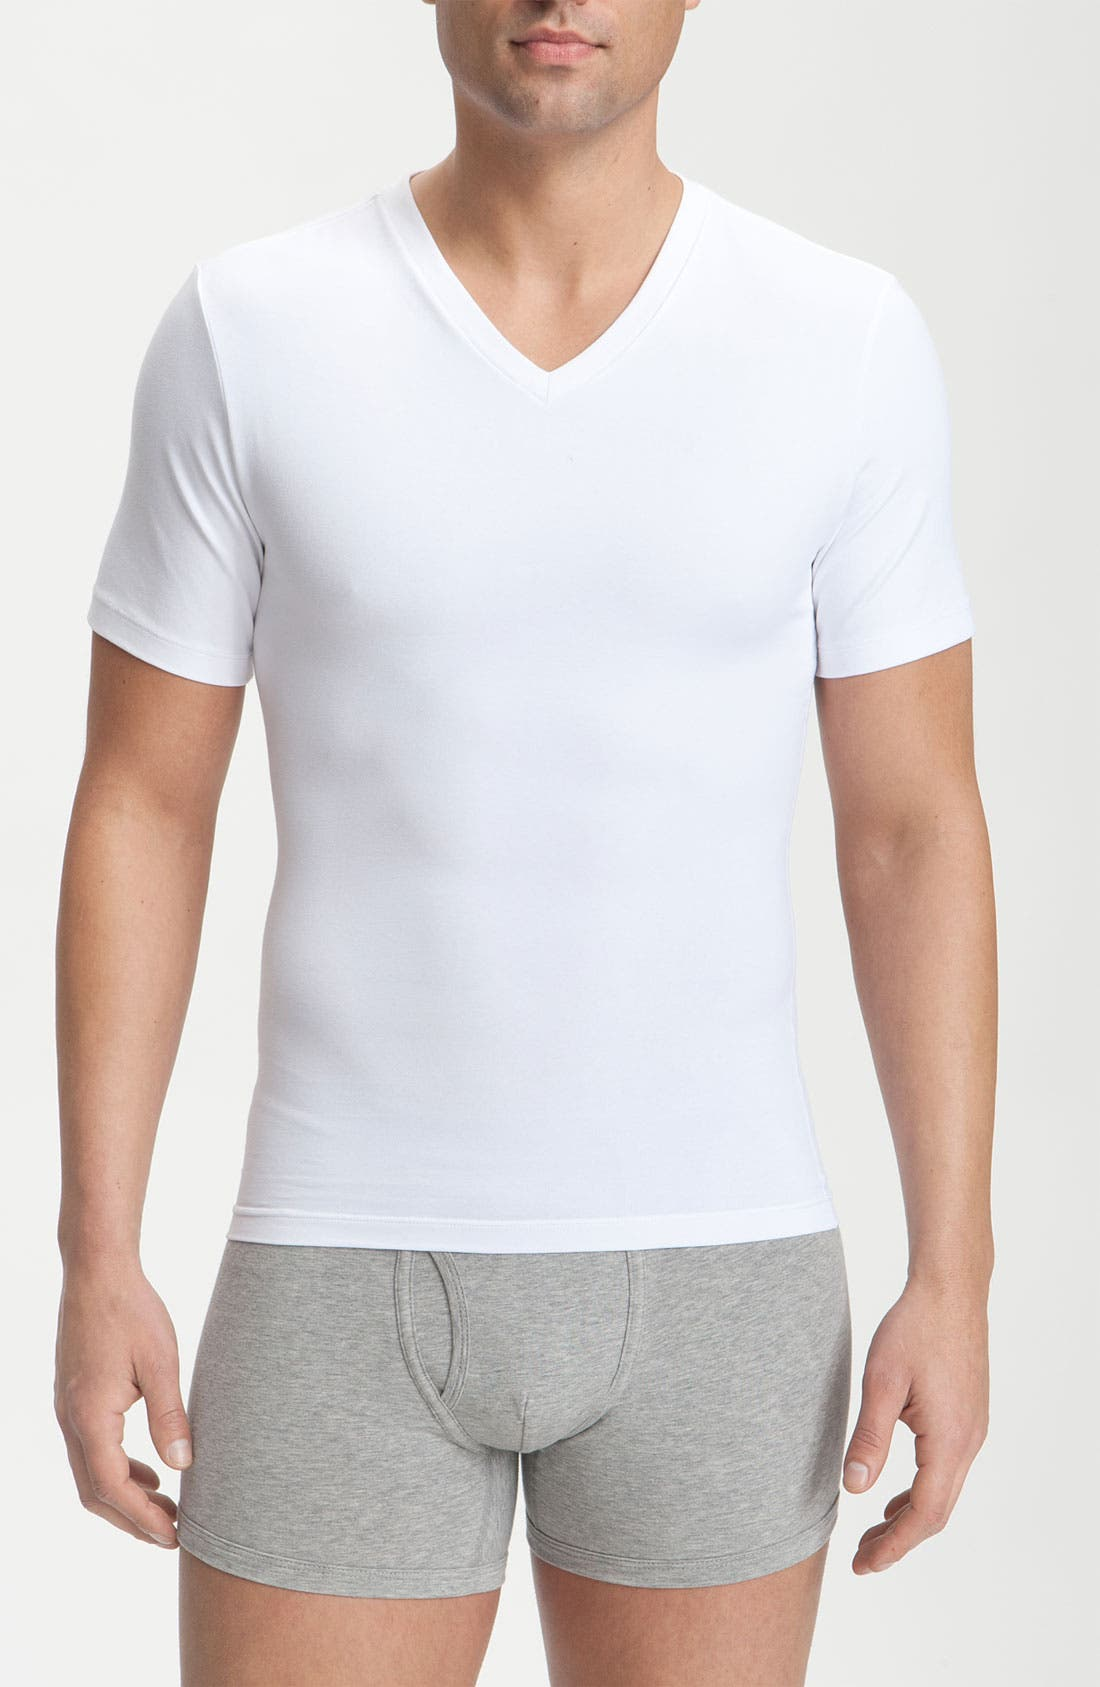 Alternate Image 1 Selected - SPANX® Cotton Control V-Neck T-Shirt